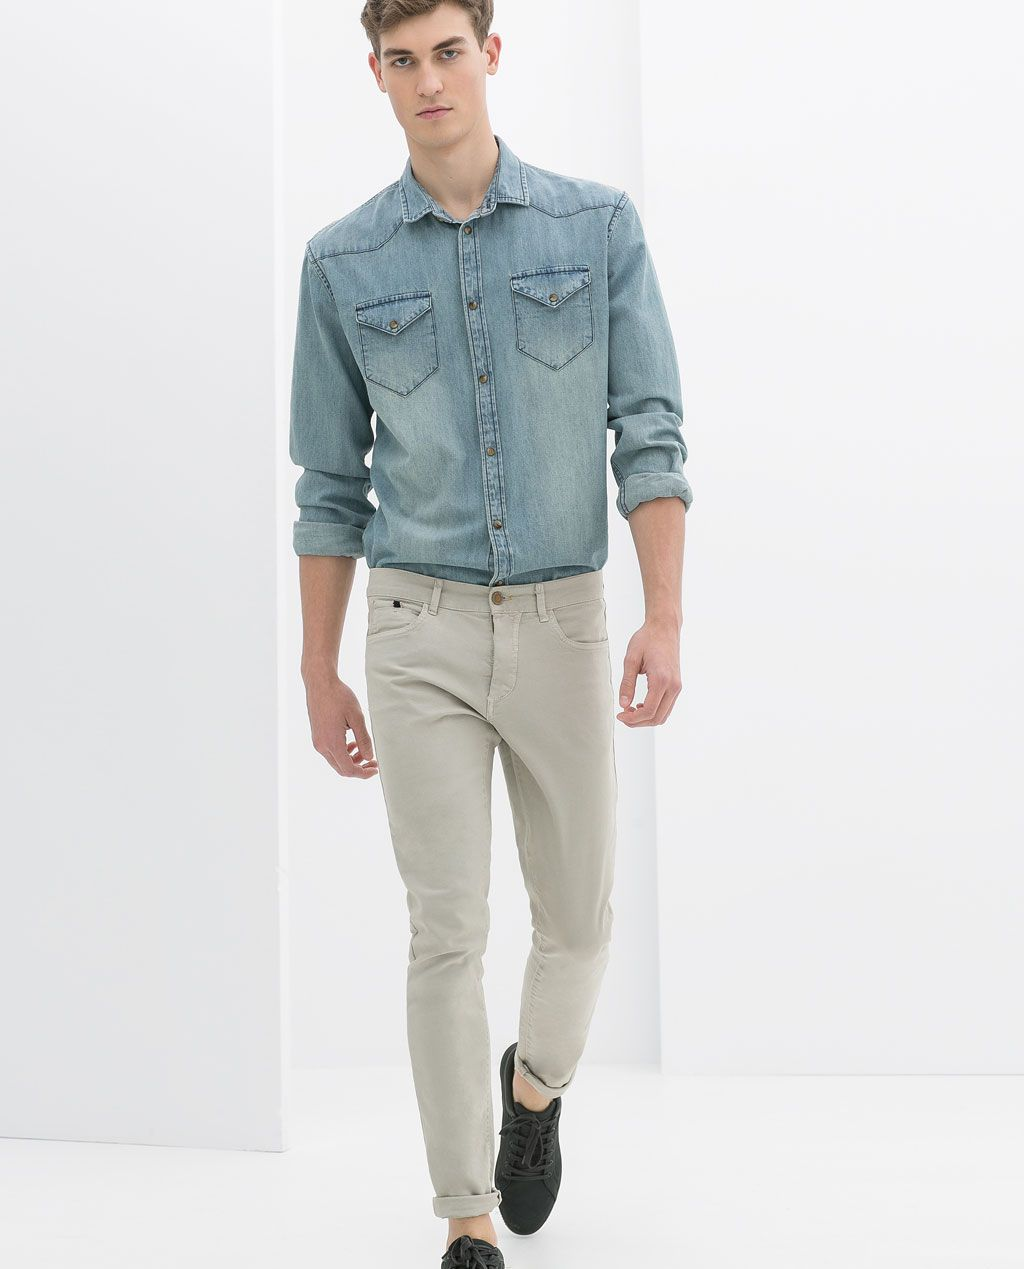 Image 1 Of 5 Pocket Trousers From Zara Inspiration For Menwears